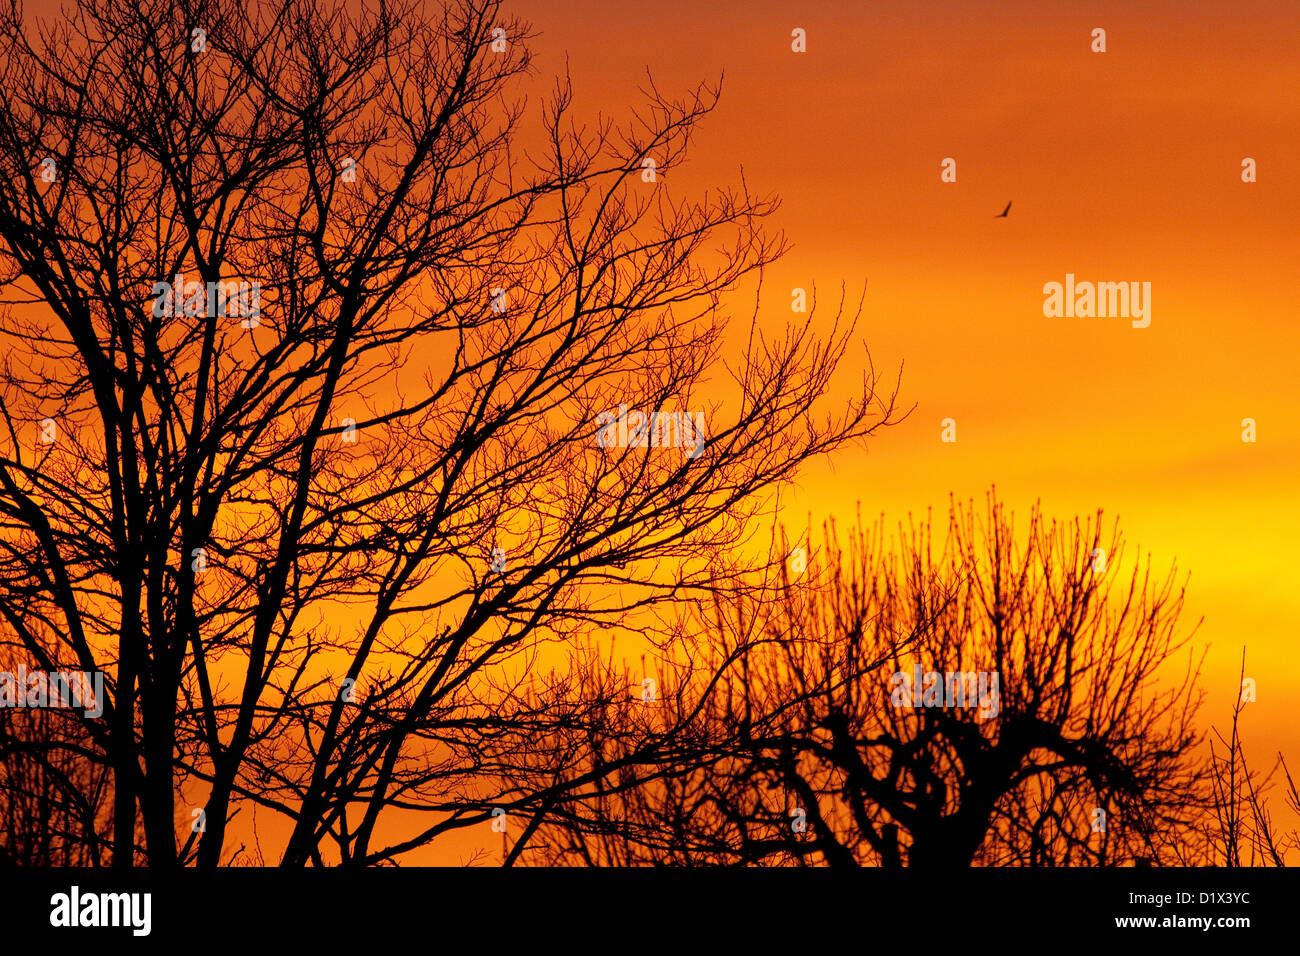 winter-sunrise-with-trees-red-sky-in-the